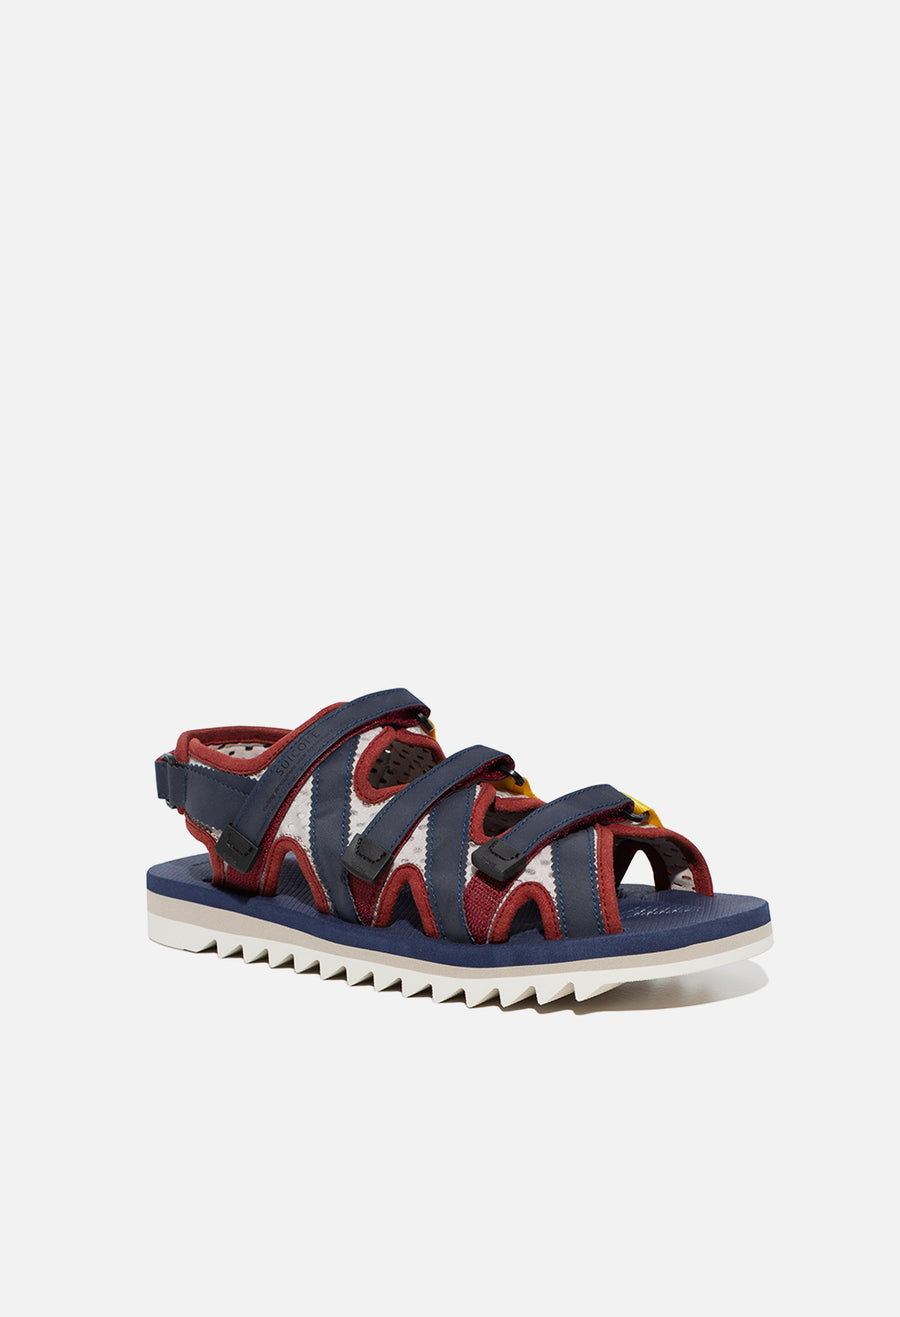 john elliott edition suicoke zip sandal in navy